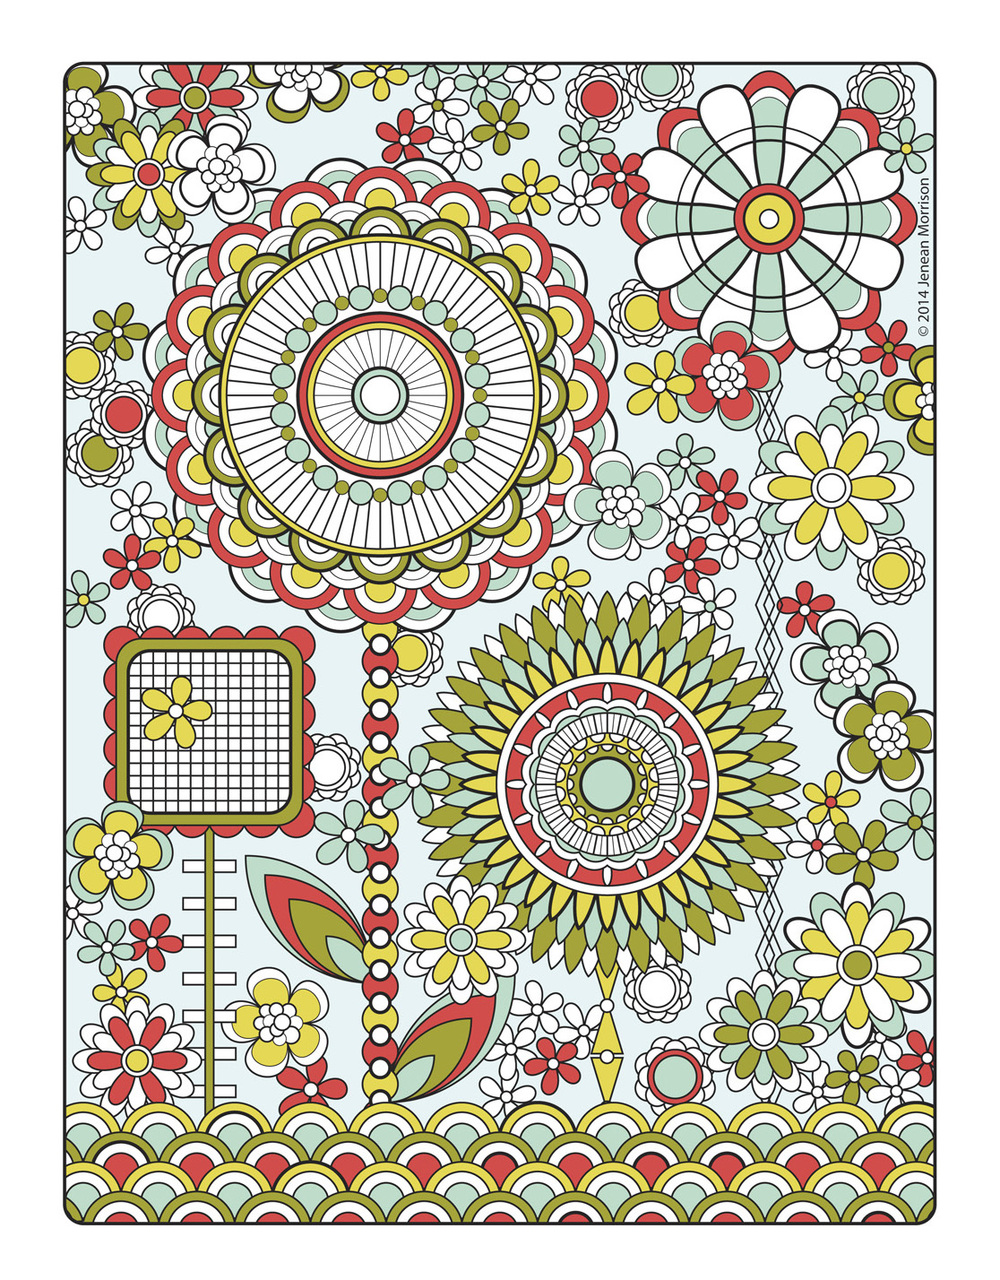 Flower Designs Coloring Book Jenean Morrison Art amp Design